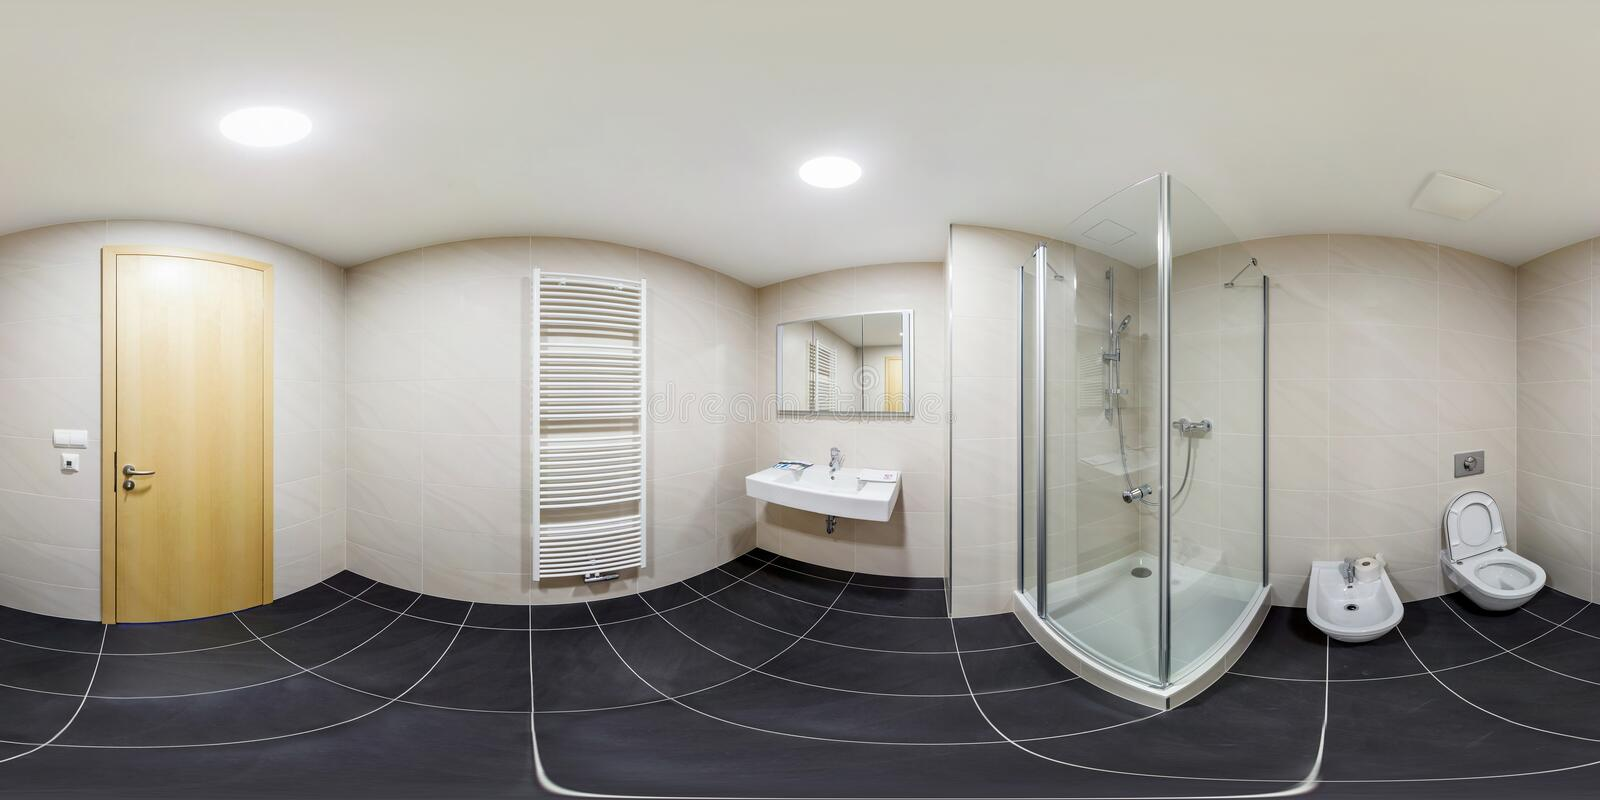 PRAHA , CZECH REPUBLIC - JULY 26, 2013: Inside of the interior of white bathroom in minimalistic style. Full 360 degree panorama. PRAHA , CZECH REPUBLIC - JULY stock image